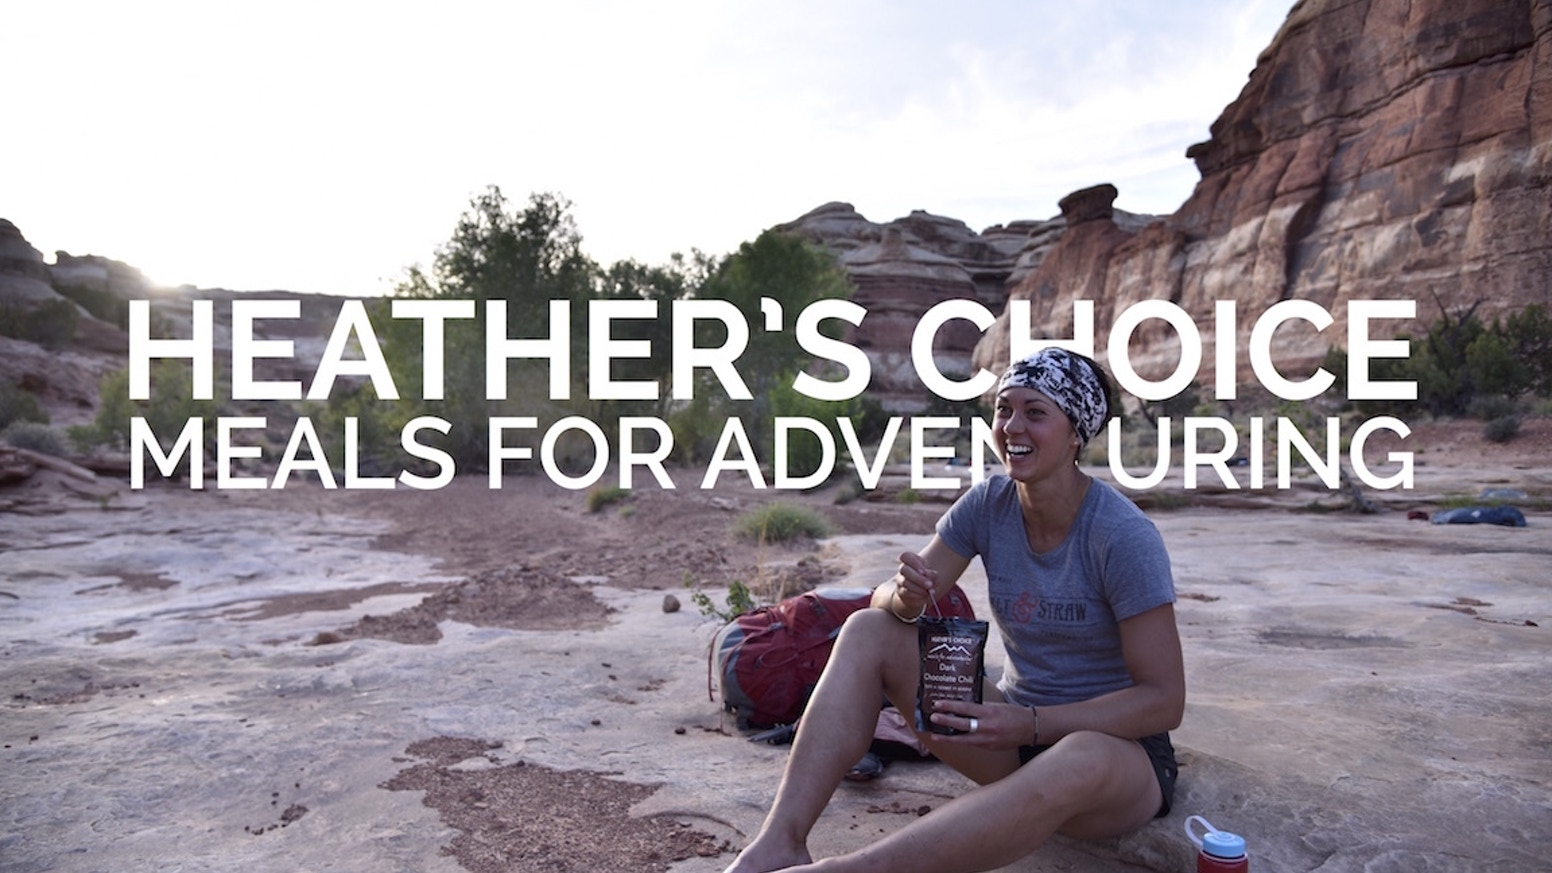 Packable meals + snacks for all your backcountry trips. Gluten-free. Just add water. Share your adventure with #heatherschoice